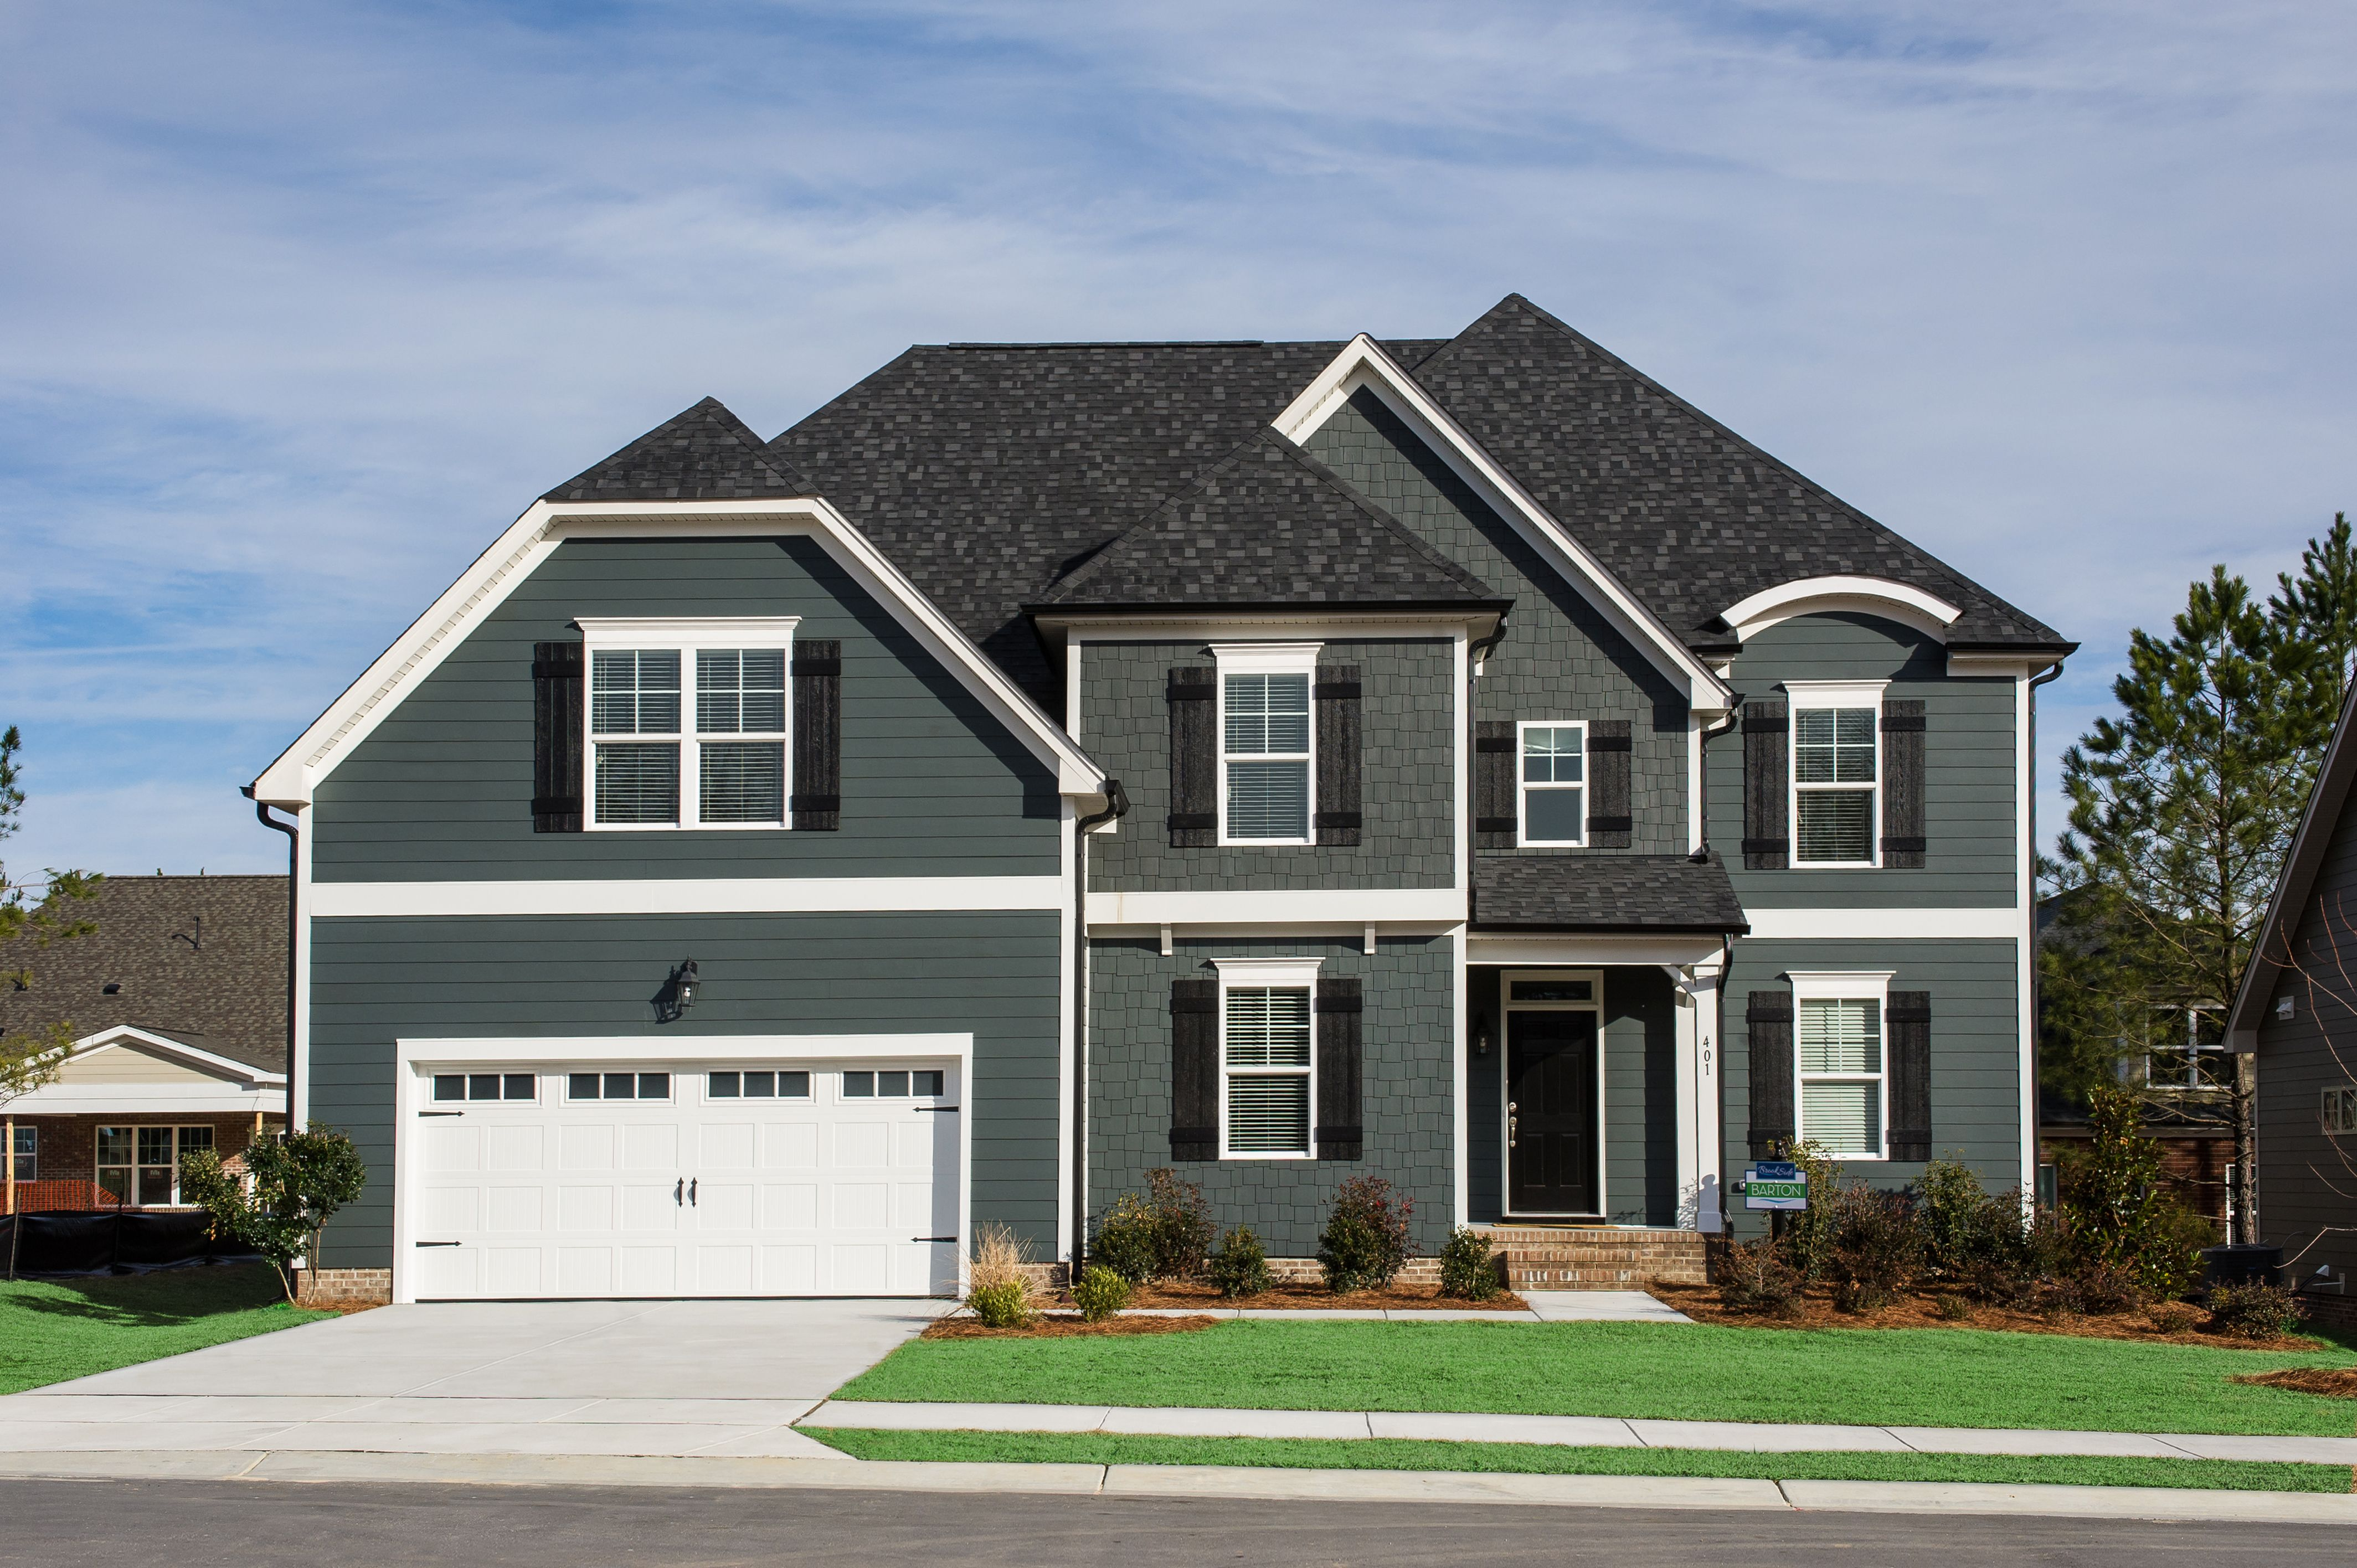 house plans fuquay varina nc homes tips zone savvy homes braxton village kaitlin 1068502 hope mills